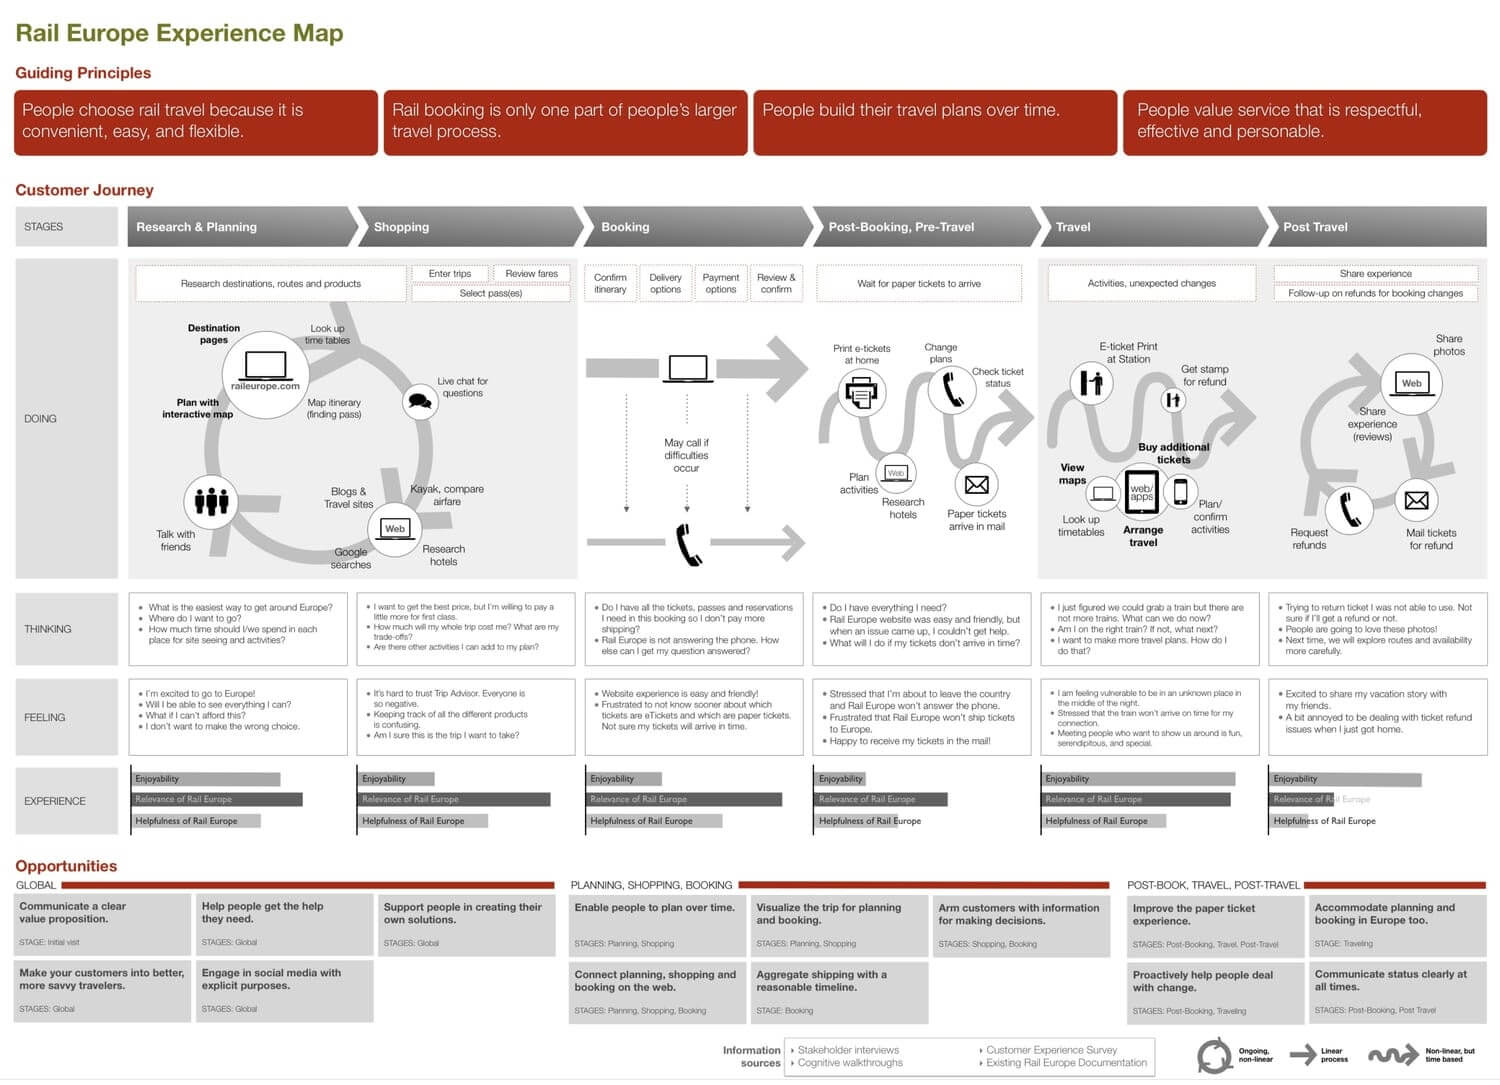 detailed customer experience journey map from rail europe